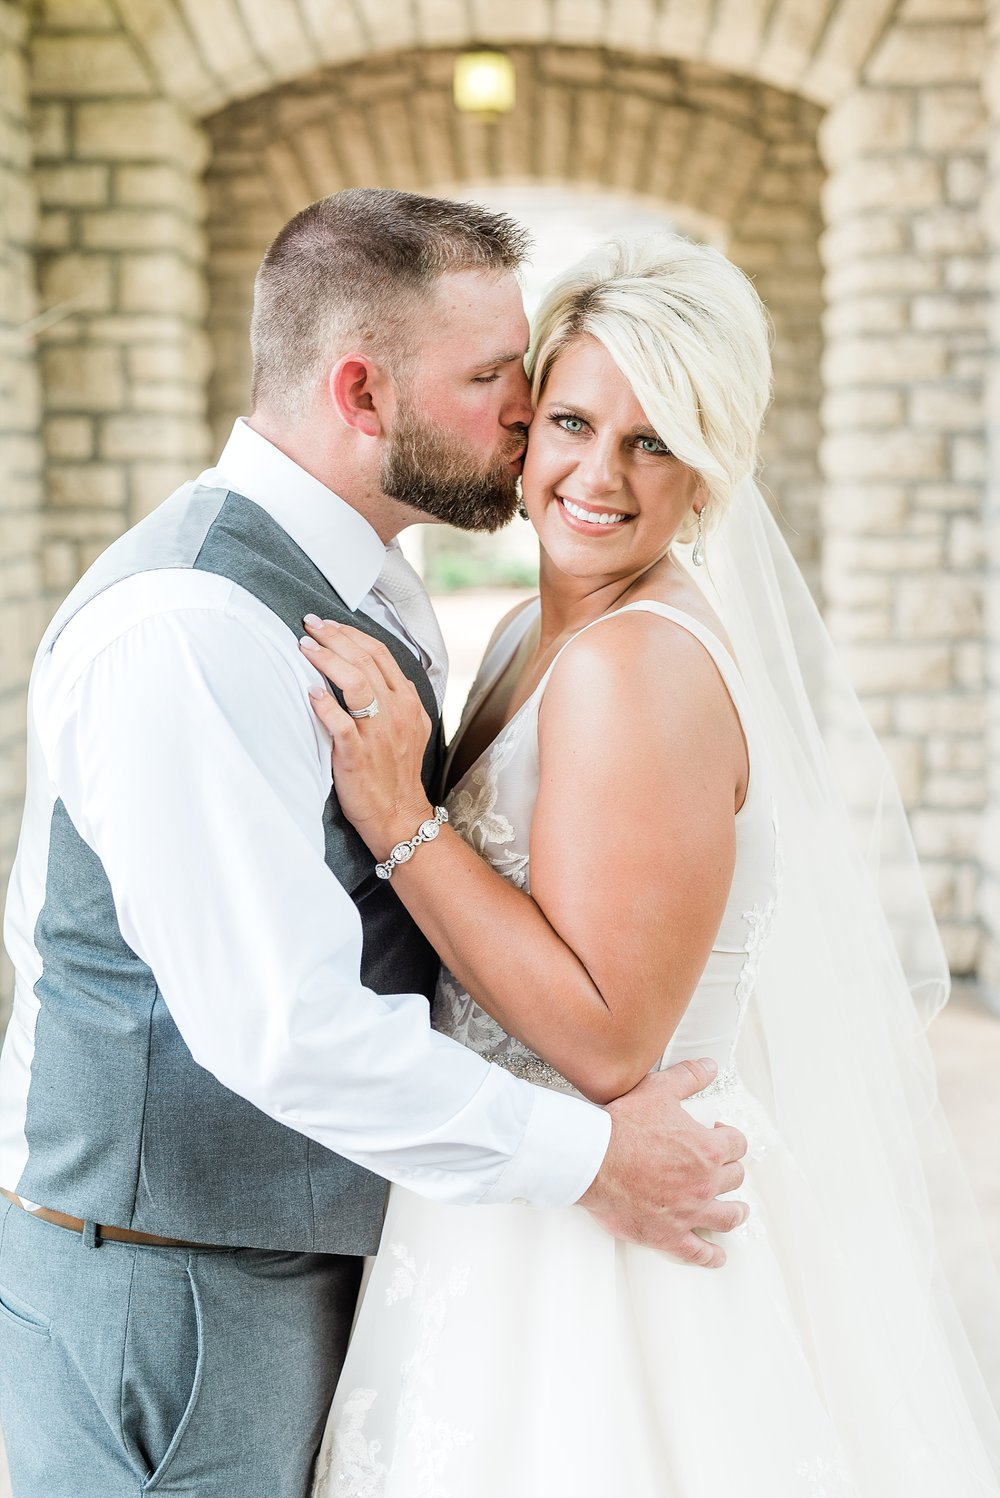 Rose Gold, White, and Greenery High Class Summer Wedding at The Millbottom in Downtown Jefferson City by Kelsi Kliethermes Photography_0021.jpg